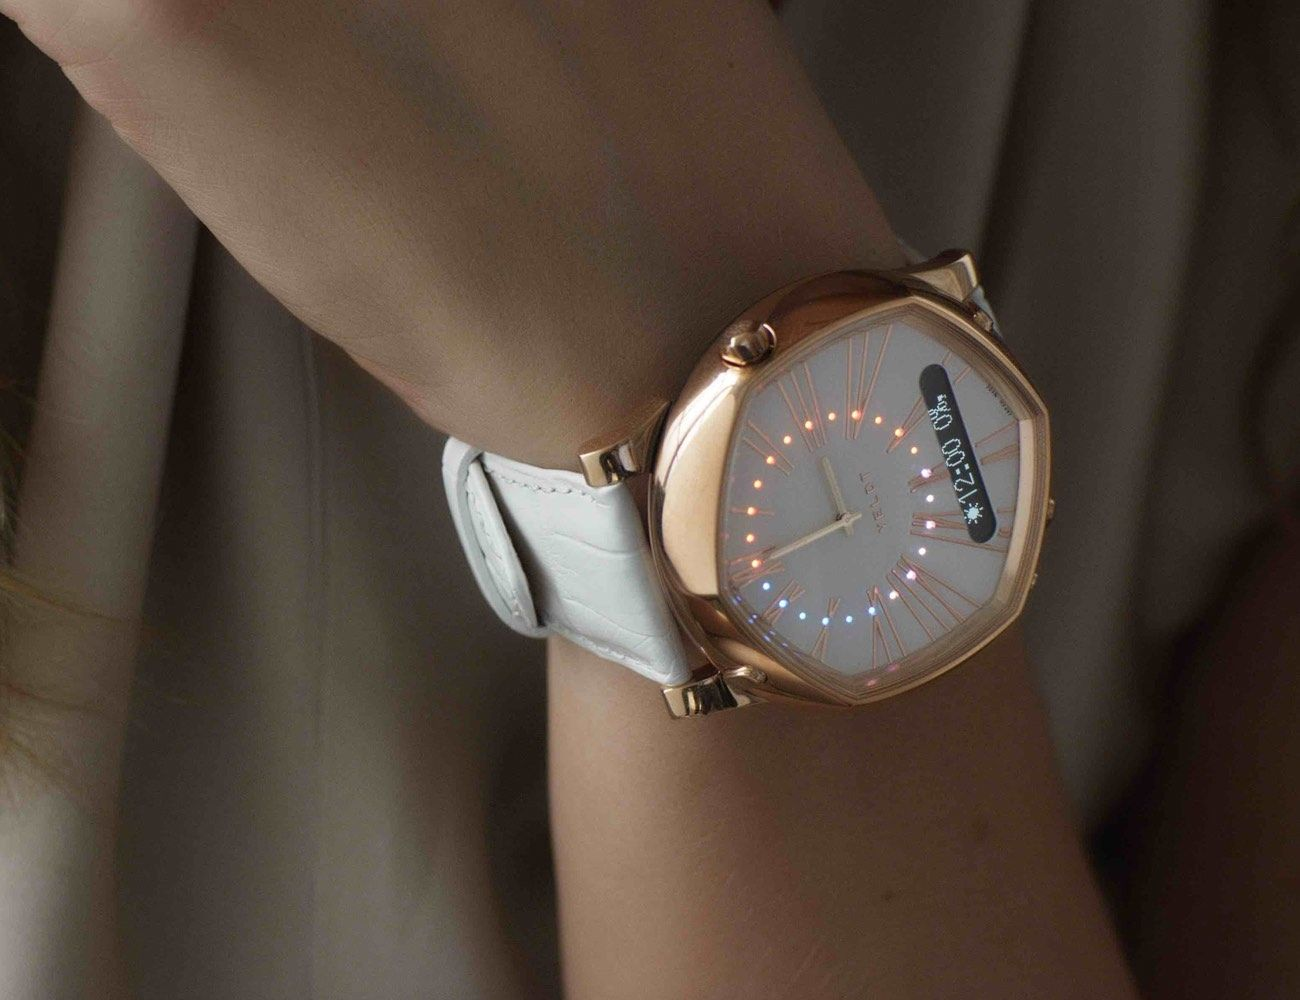 VELDT - Luxury Analogue Smart Watch For iOS